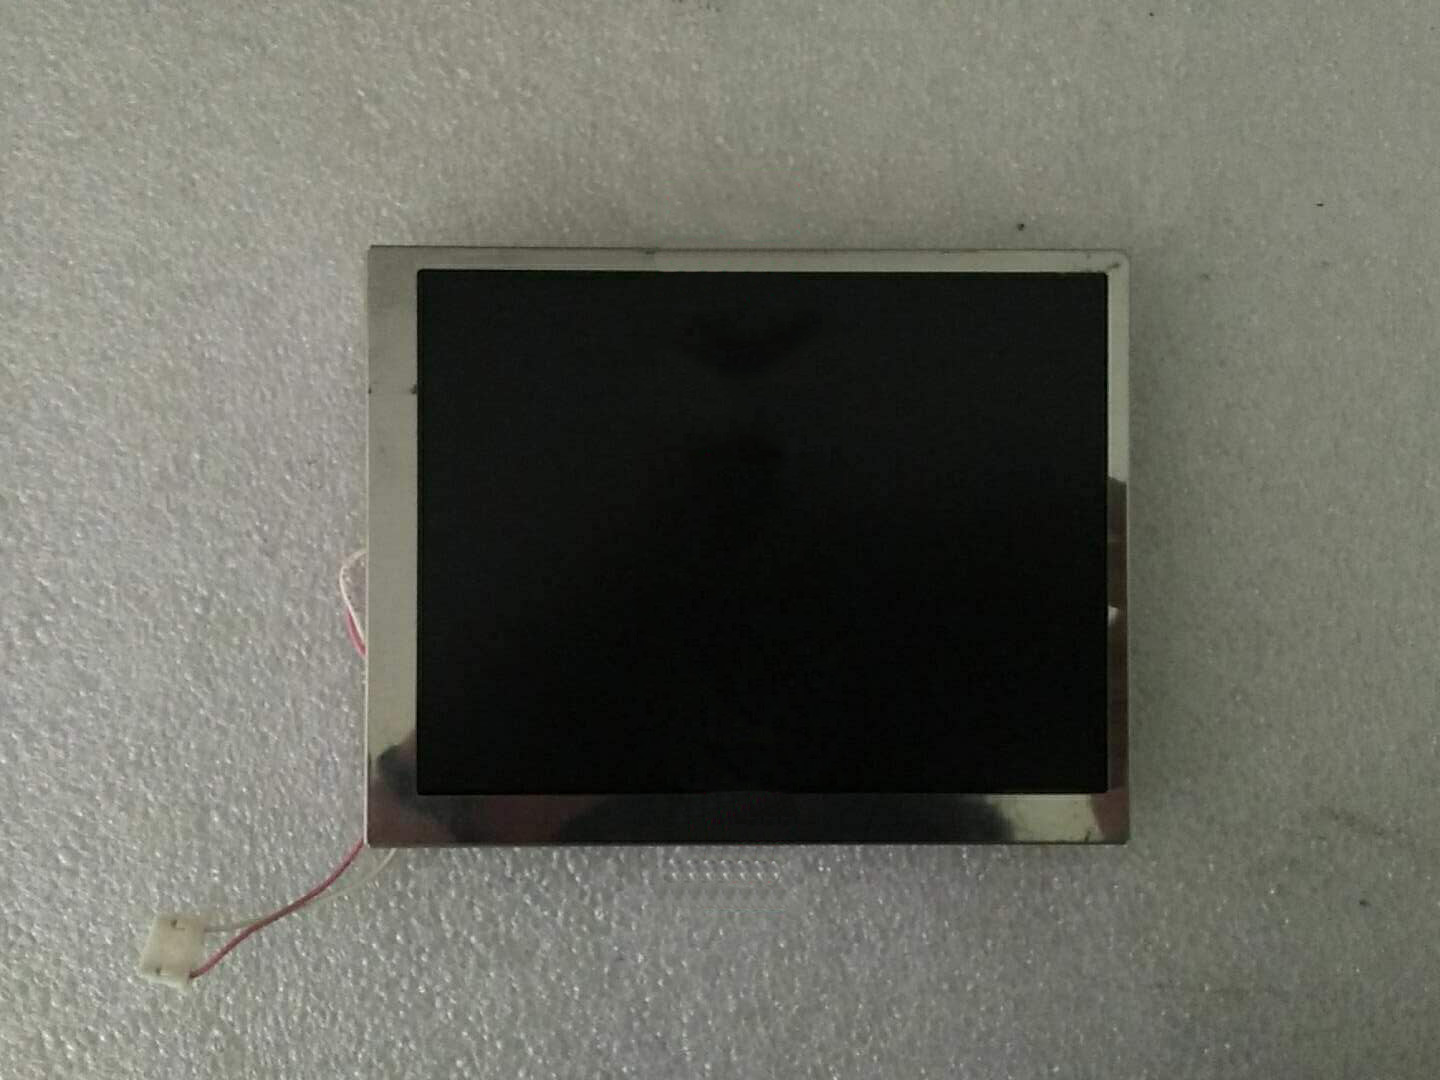 AM640480GHTNQWK1H industrial lcd display